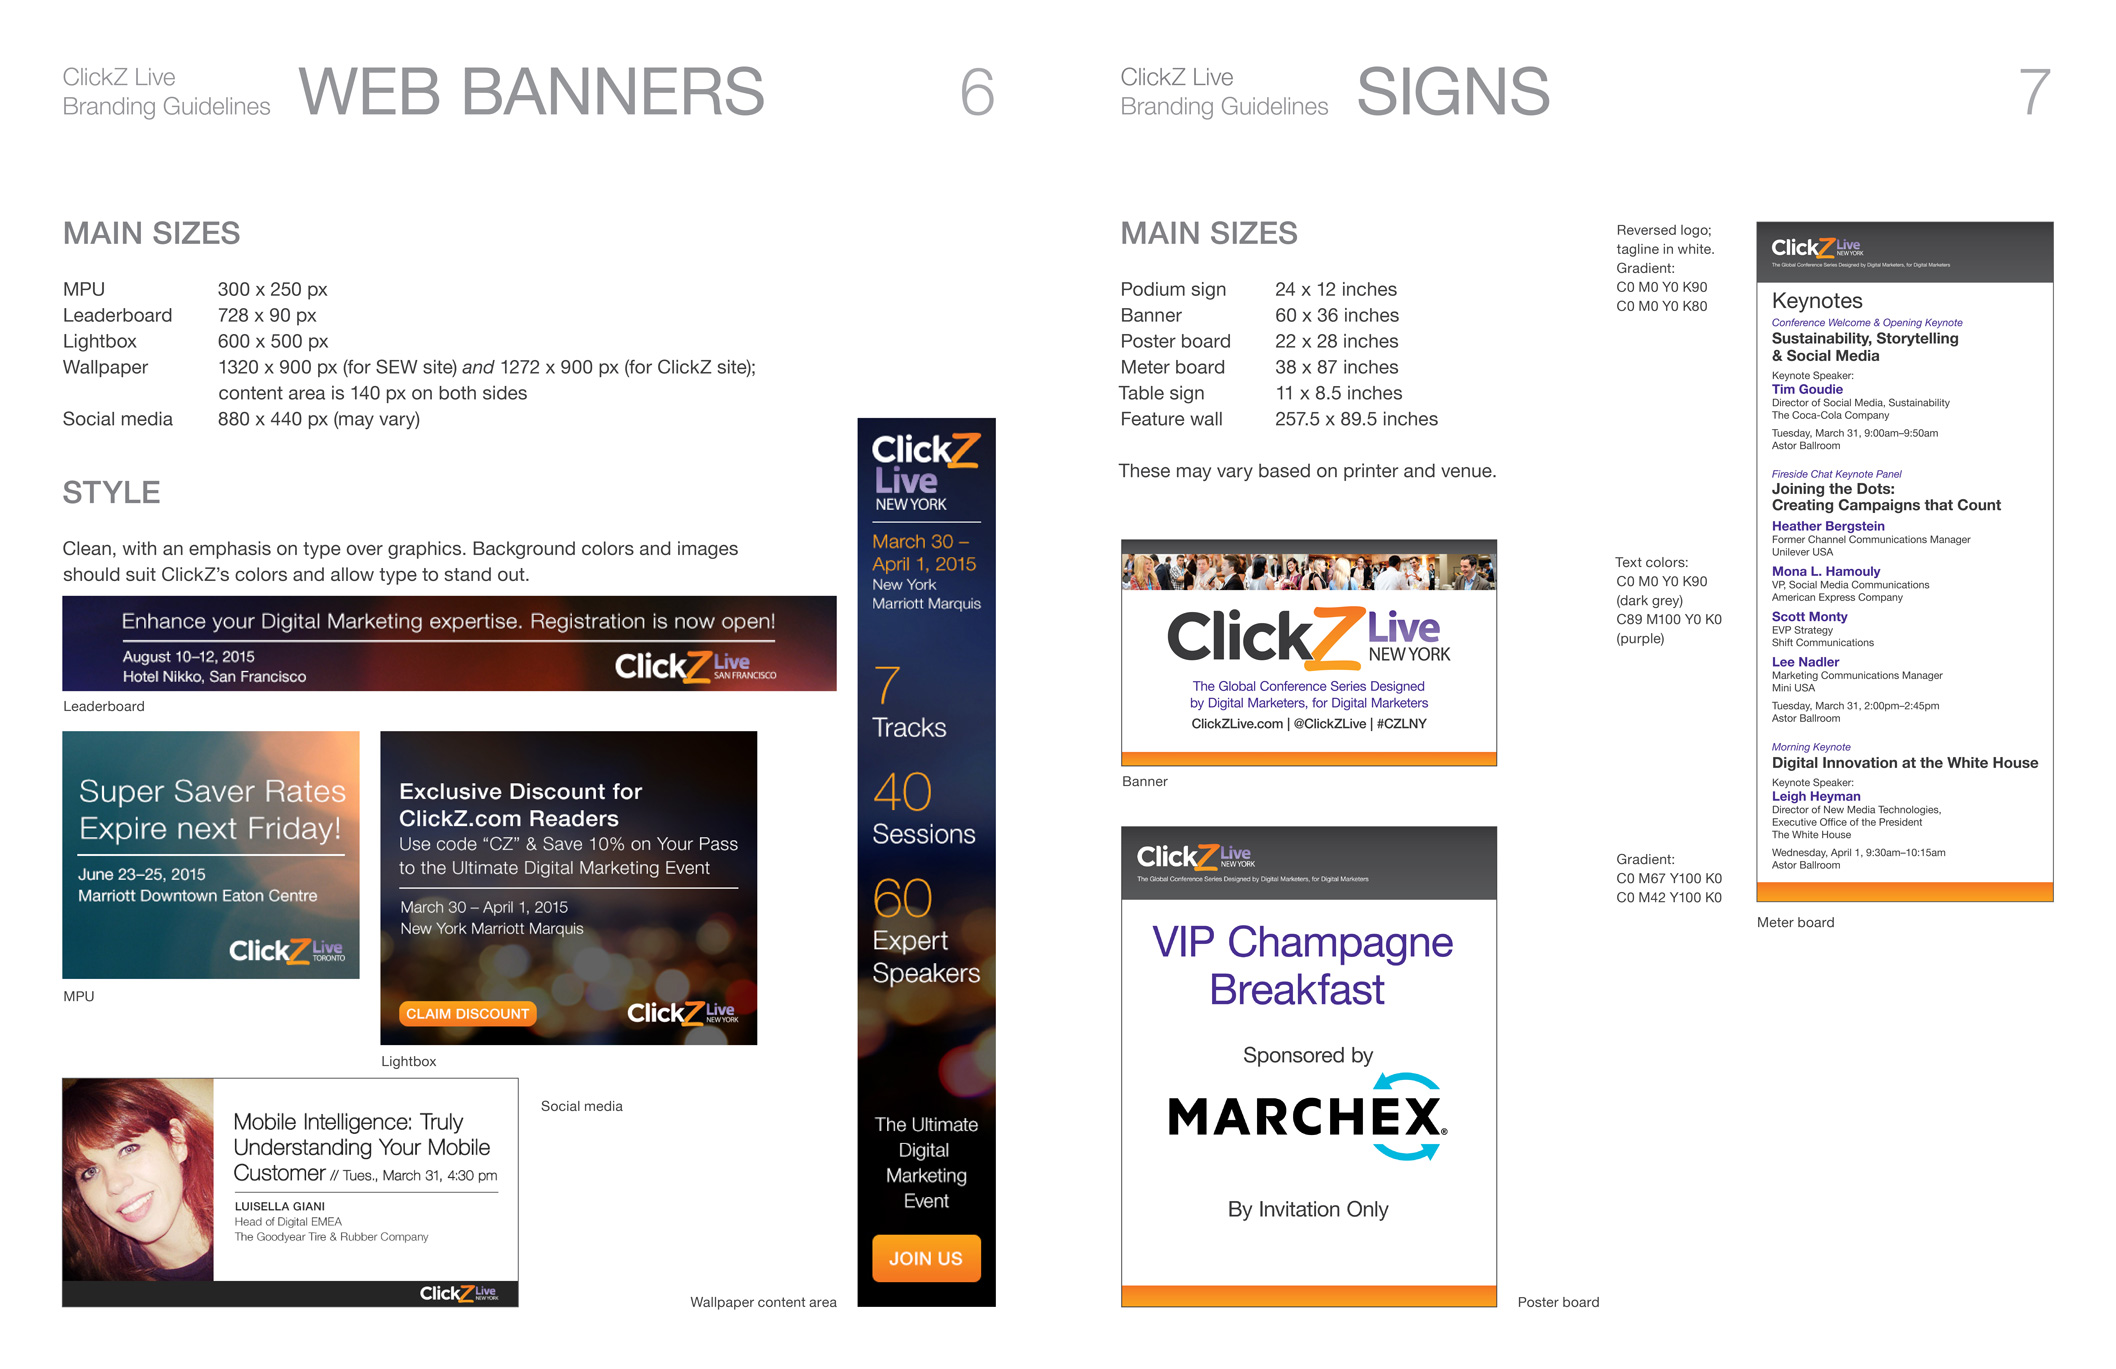 Ad and sign specs for ClickZ brand.